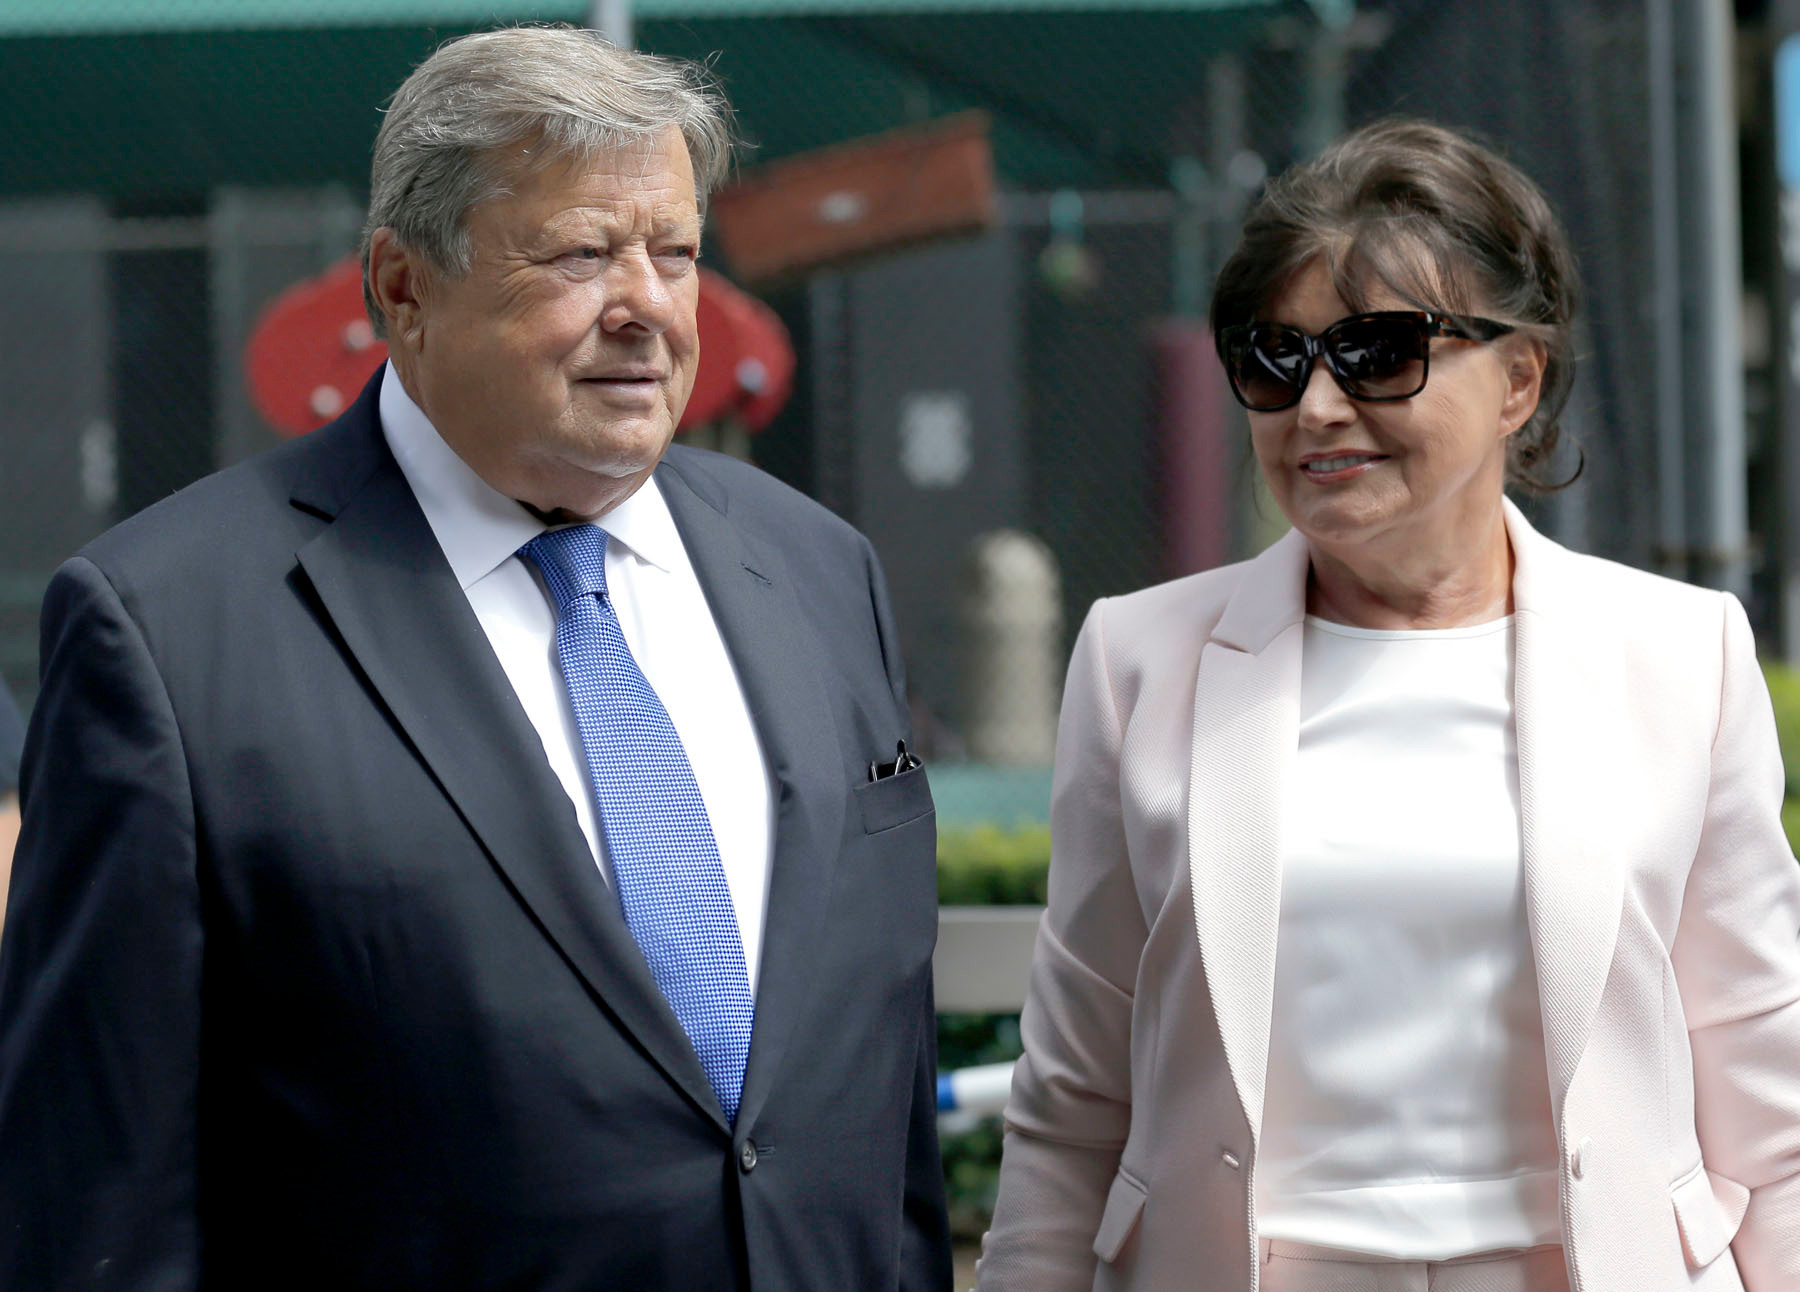 THE ASSOCIATED PRESSViktor and Amalija Knavs, First Lady Melania Trump's parents, took the citizenship oath on Thursday in New York City.